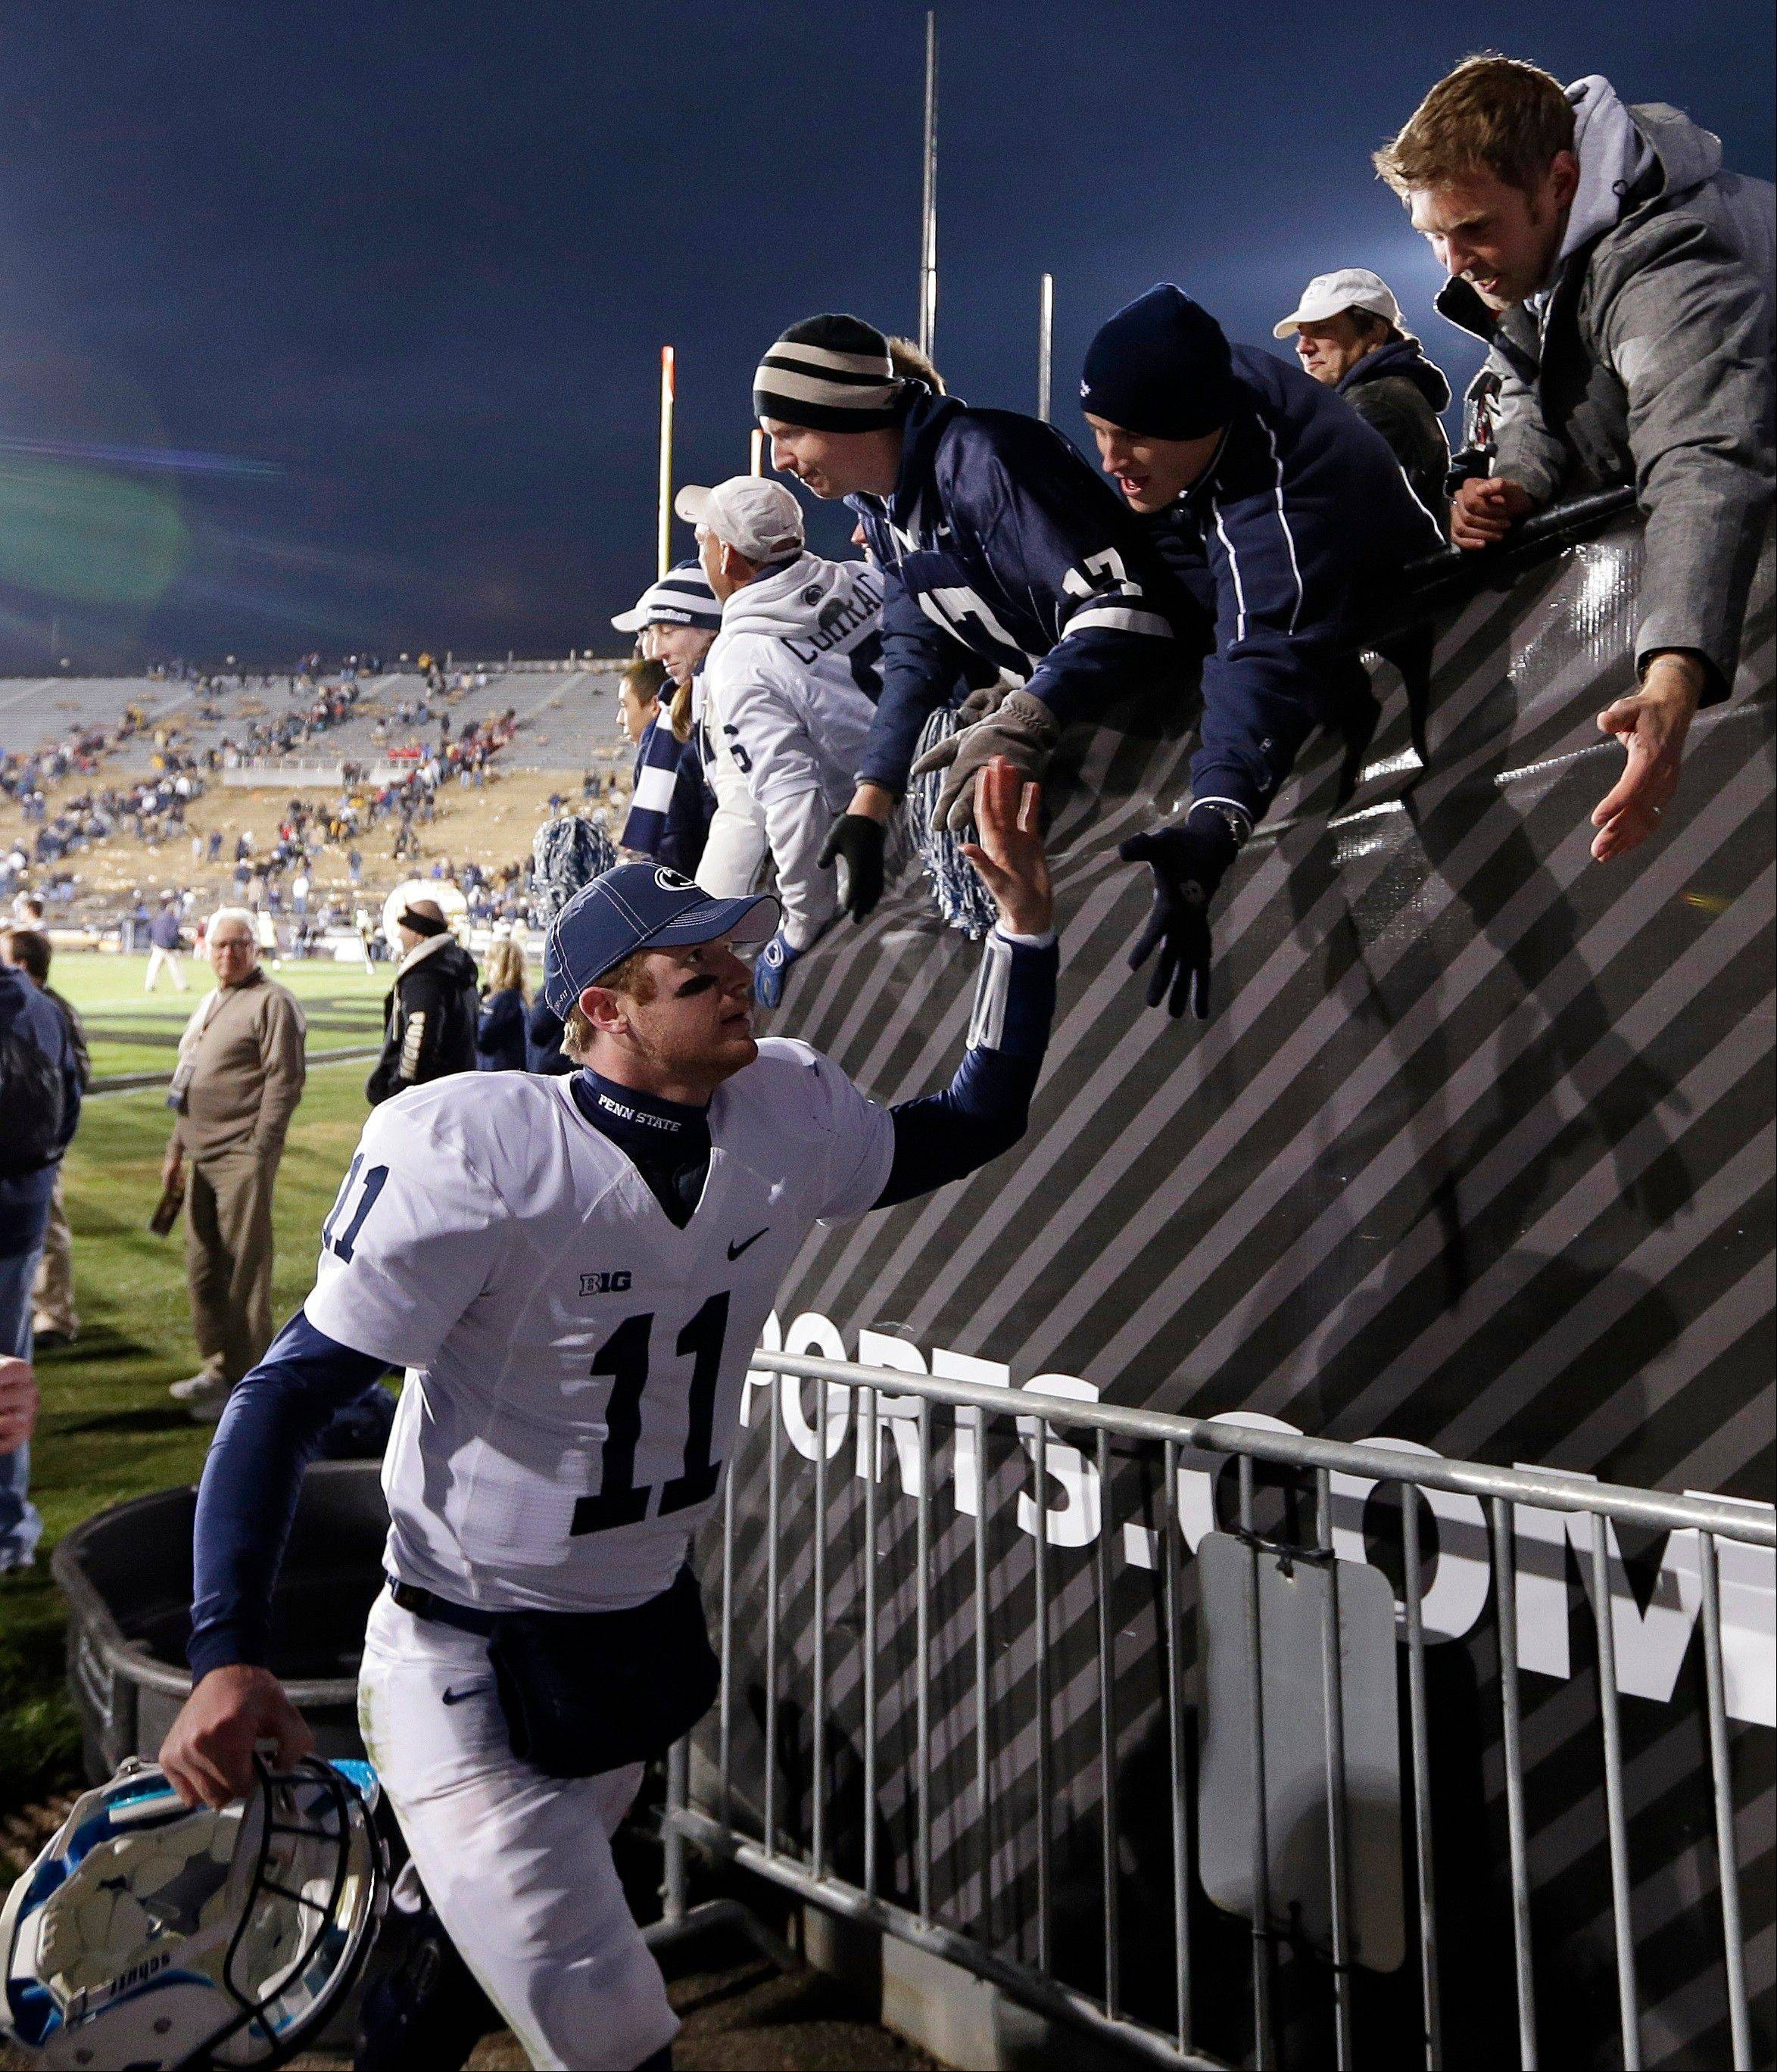 ASSOCIATED PRESS Penn State�s Matthew McGloin celebrates with fans after Penn State defeated Purdue, 34-9, Saturday in West Lafayette, Ind. The football team has faced unprecedented penalties in the wake of the Jerry Sandusky scandal.